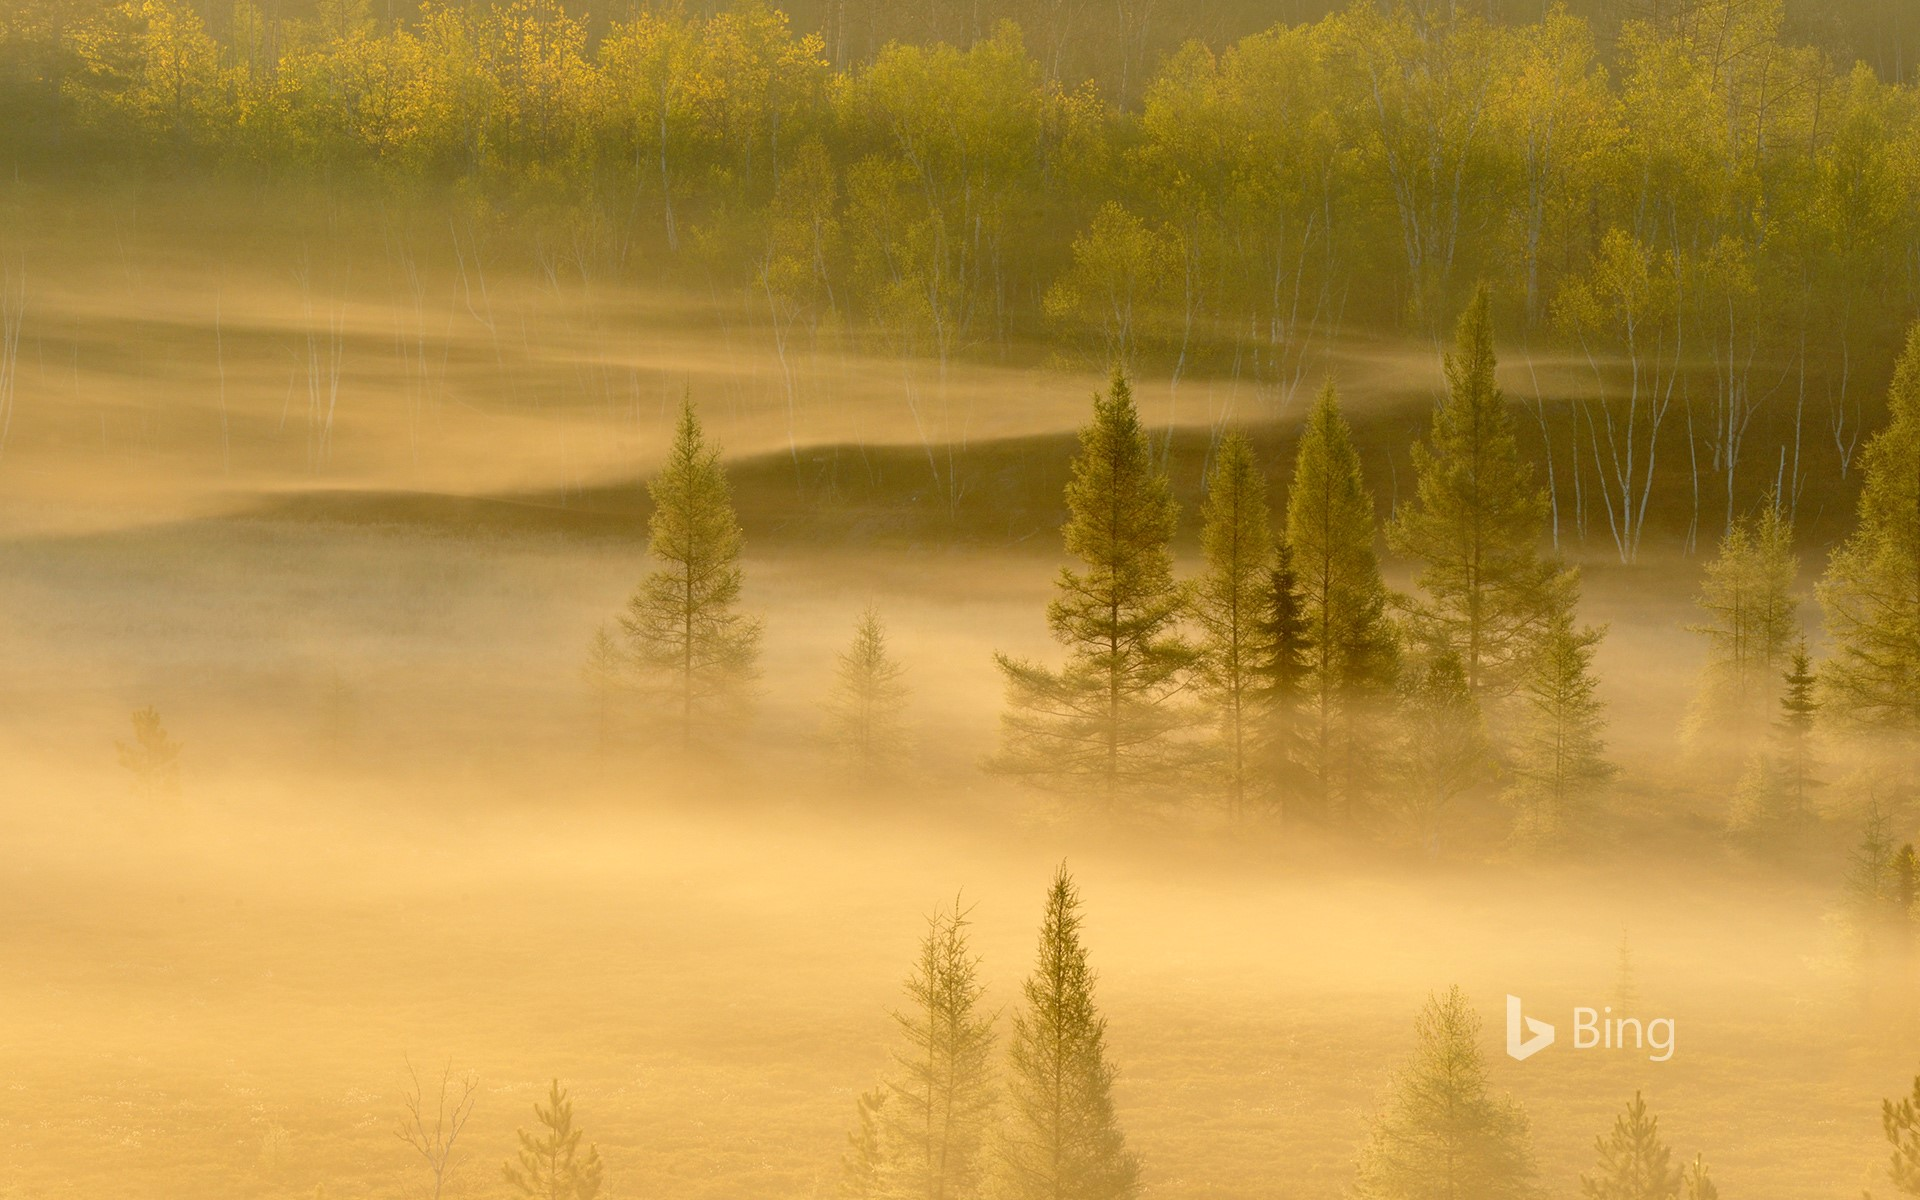 Spring trees in a misty valley, Lively, Sudbury, Ontario, Canada